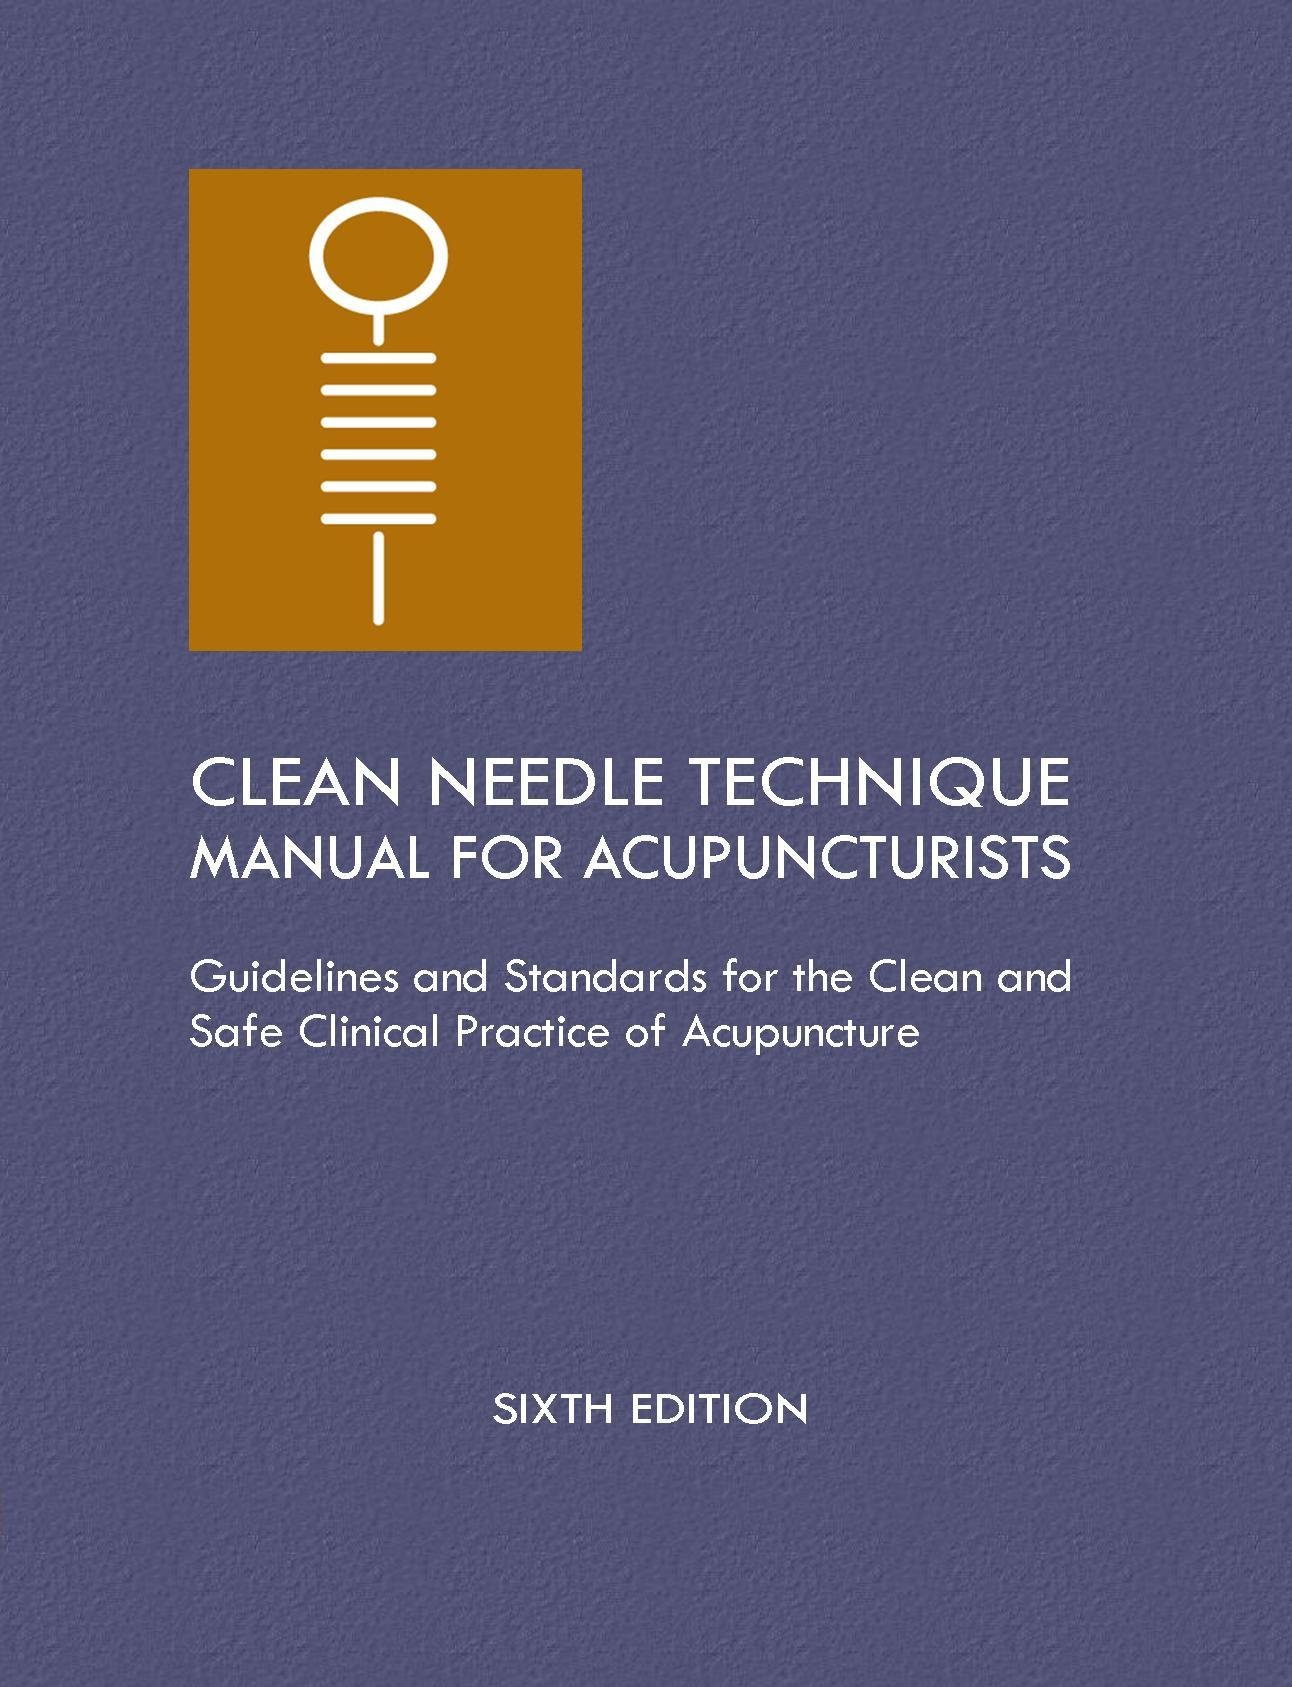 Clean Needle Technique Manual for Acupuncturists: Guidelines and Standards for the Clean and Safe Clinical Practice of Acupuncture, 6th Edition pdf